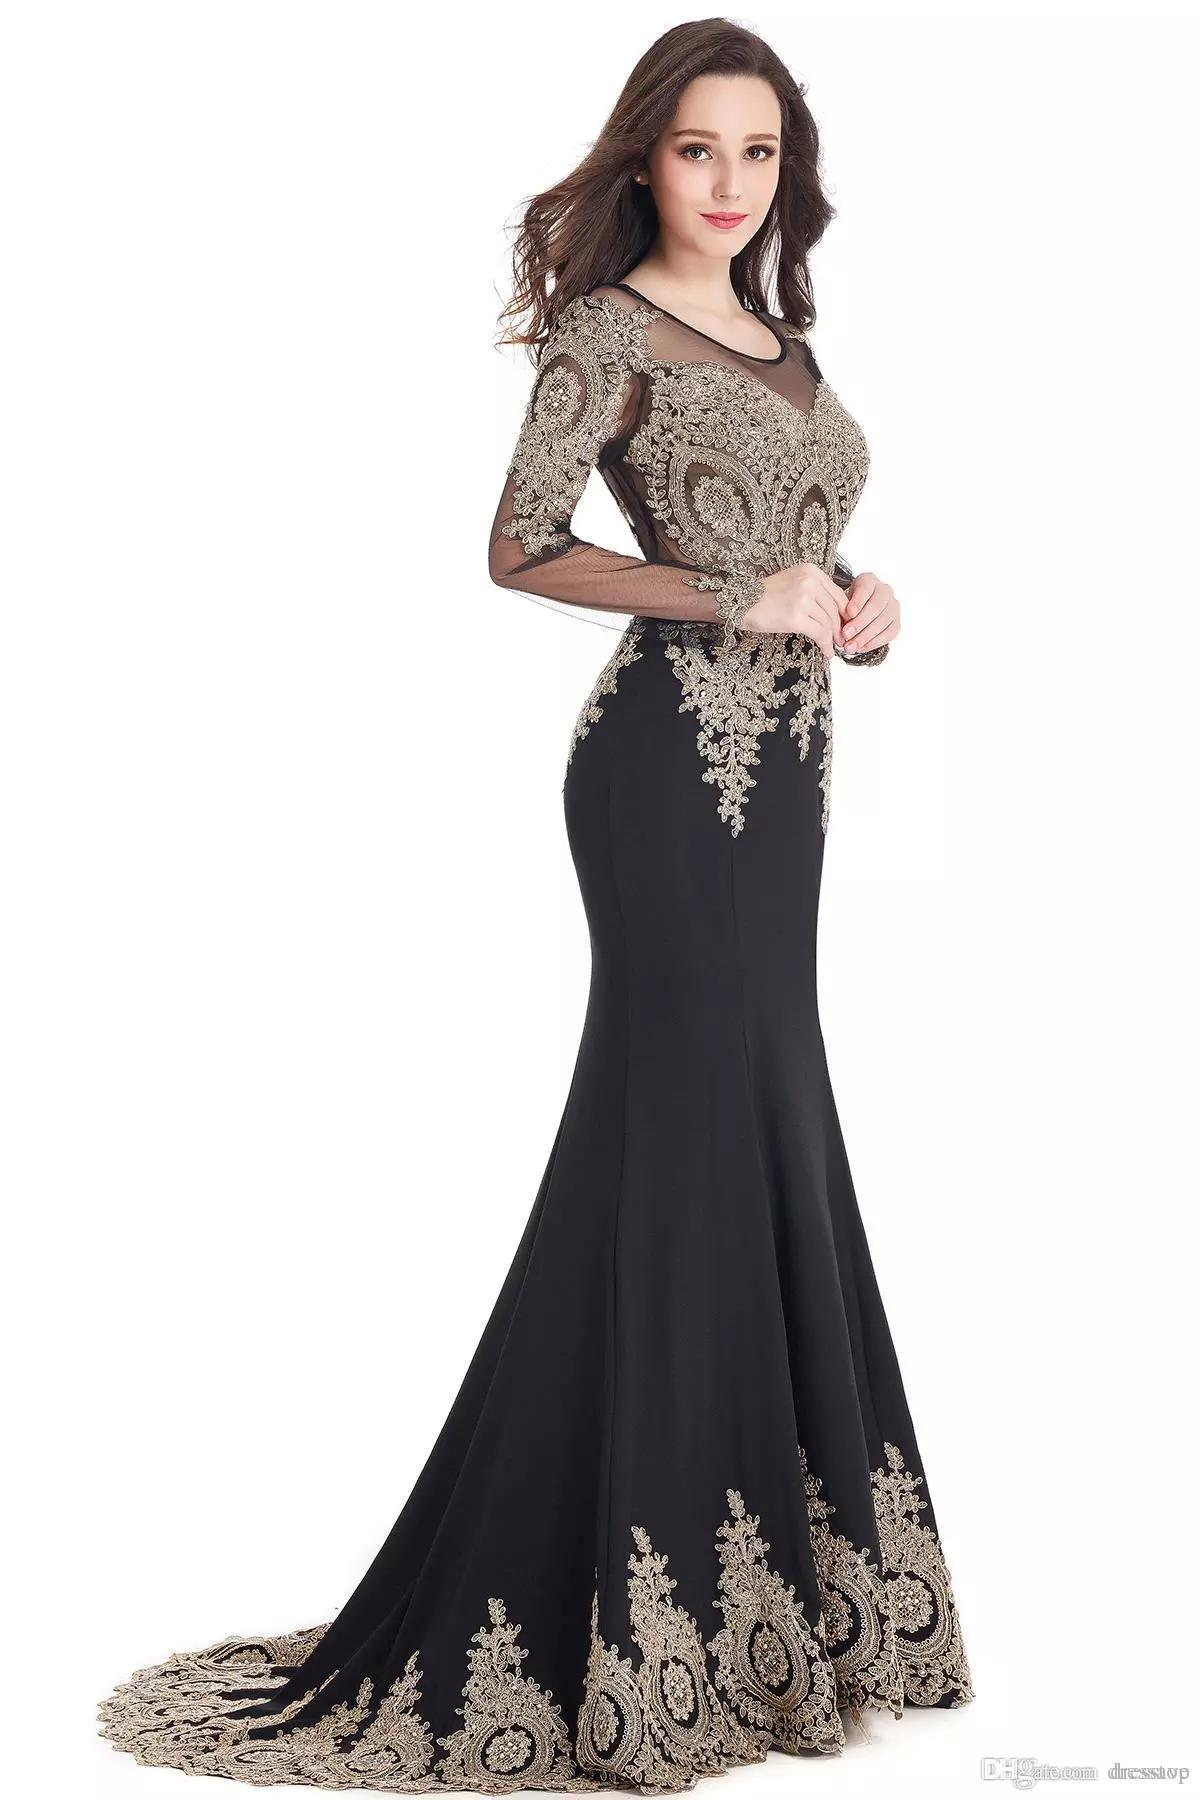 Plus Size Mermaid Prom Dresses Long Scoop Neck Sleeves Dress Evening Wear Sweep Train Lace Elegant Mother Of The Bride Dresses